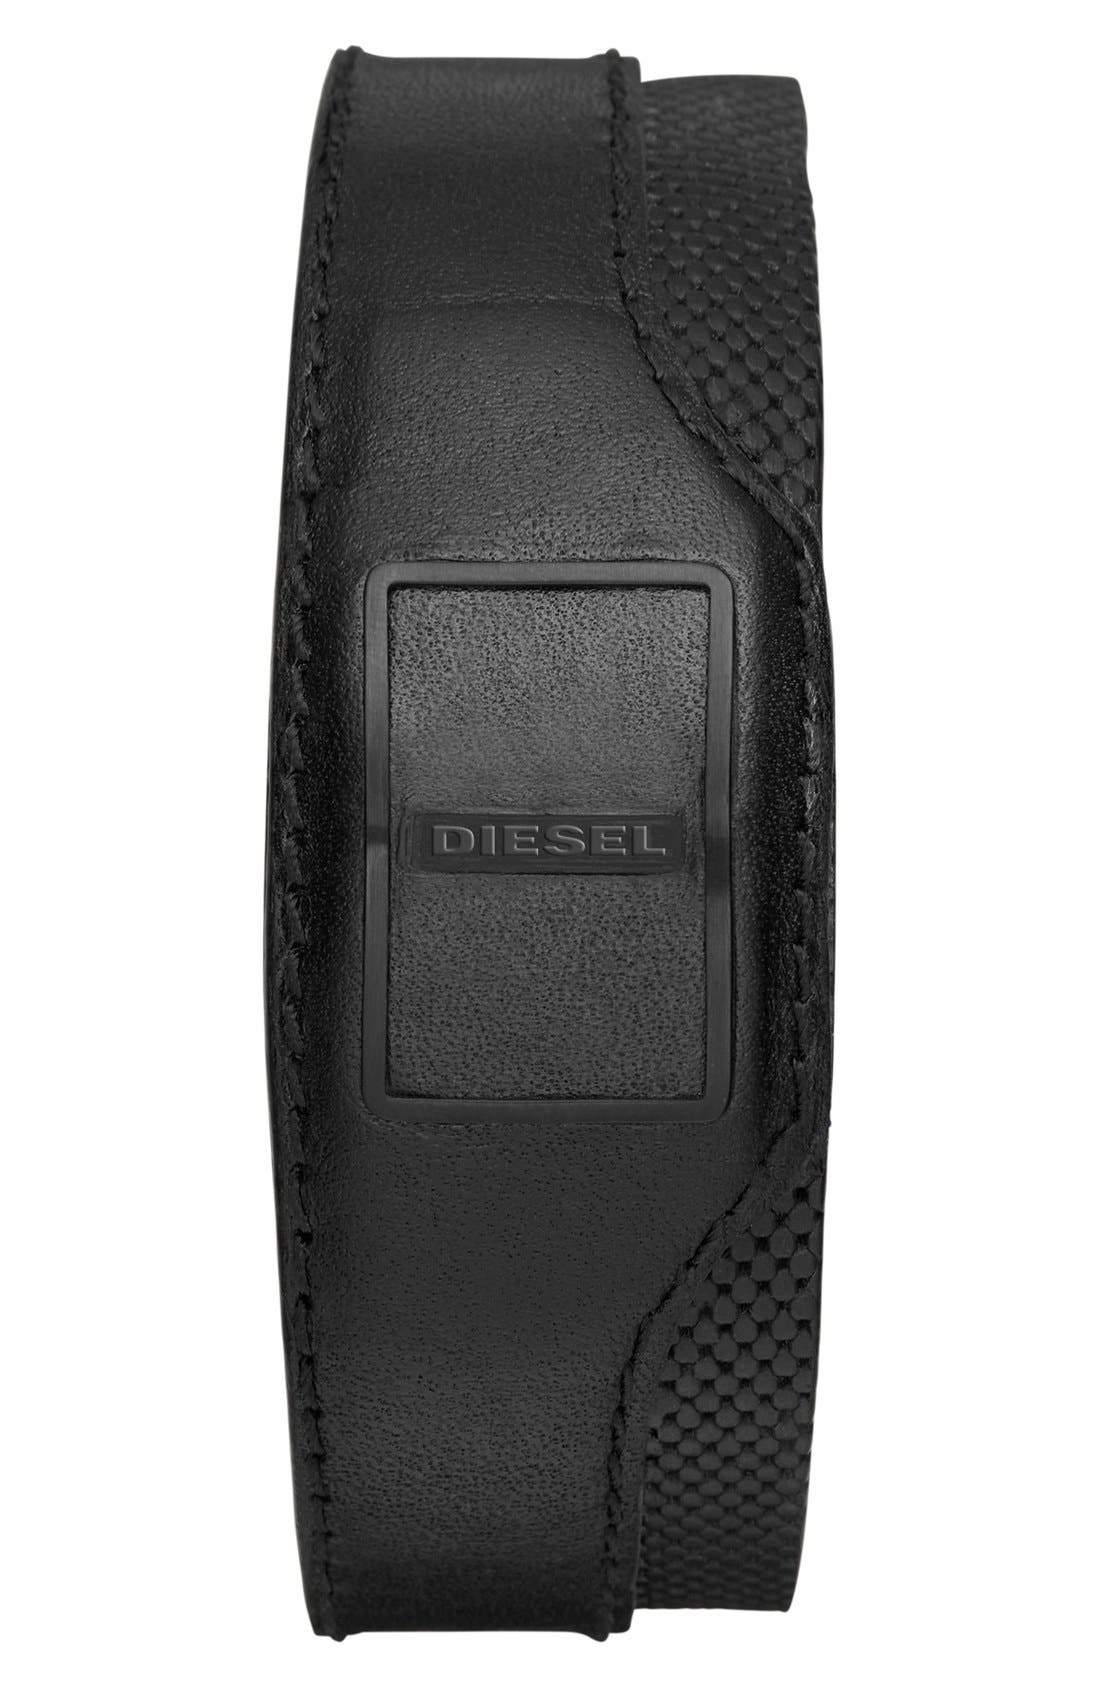 Leather Cuff Activity Tracker,                             Main thumbnail 1, color,